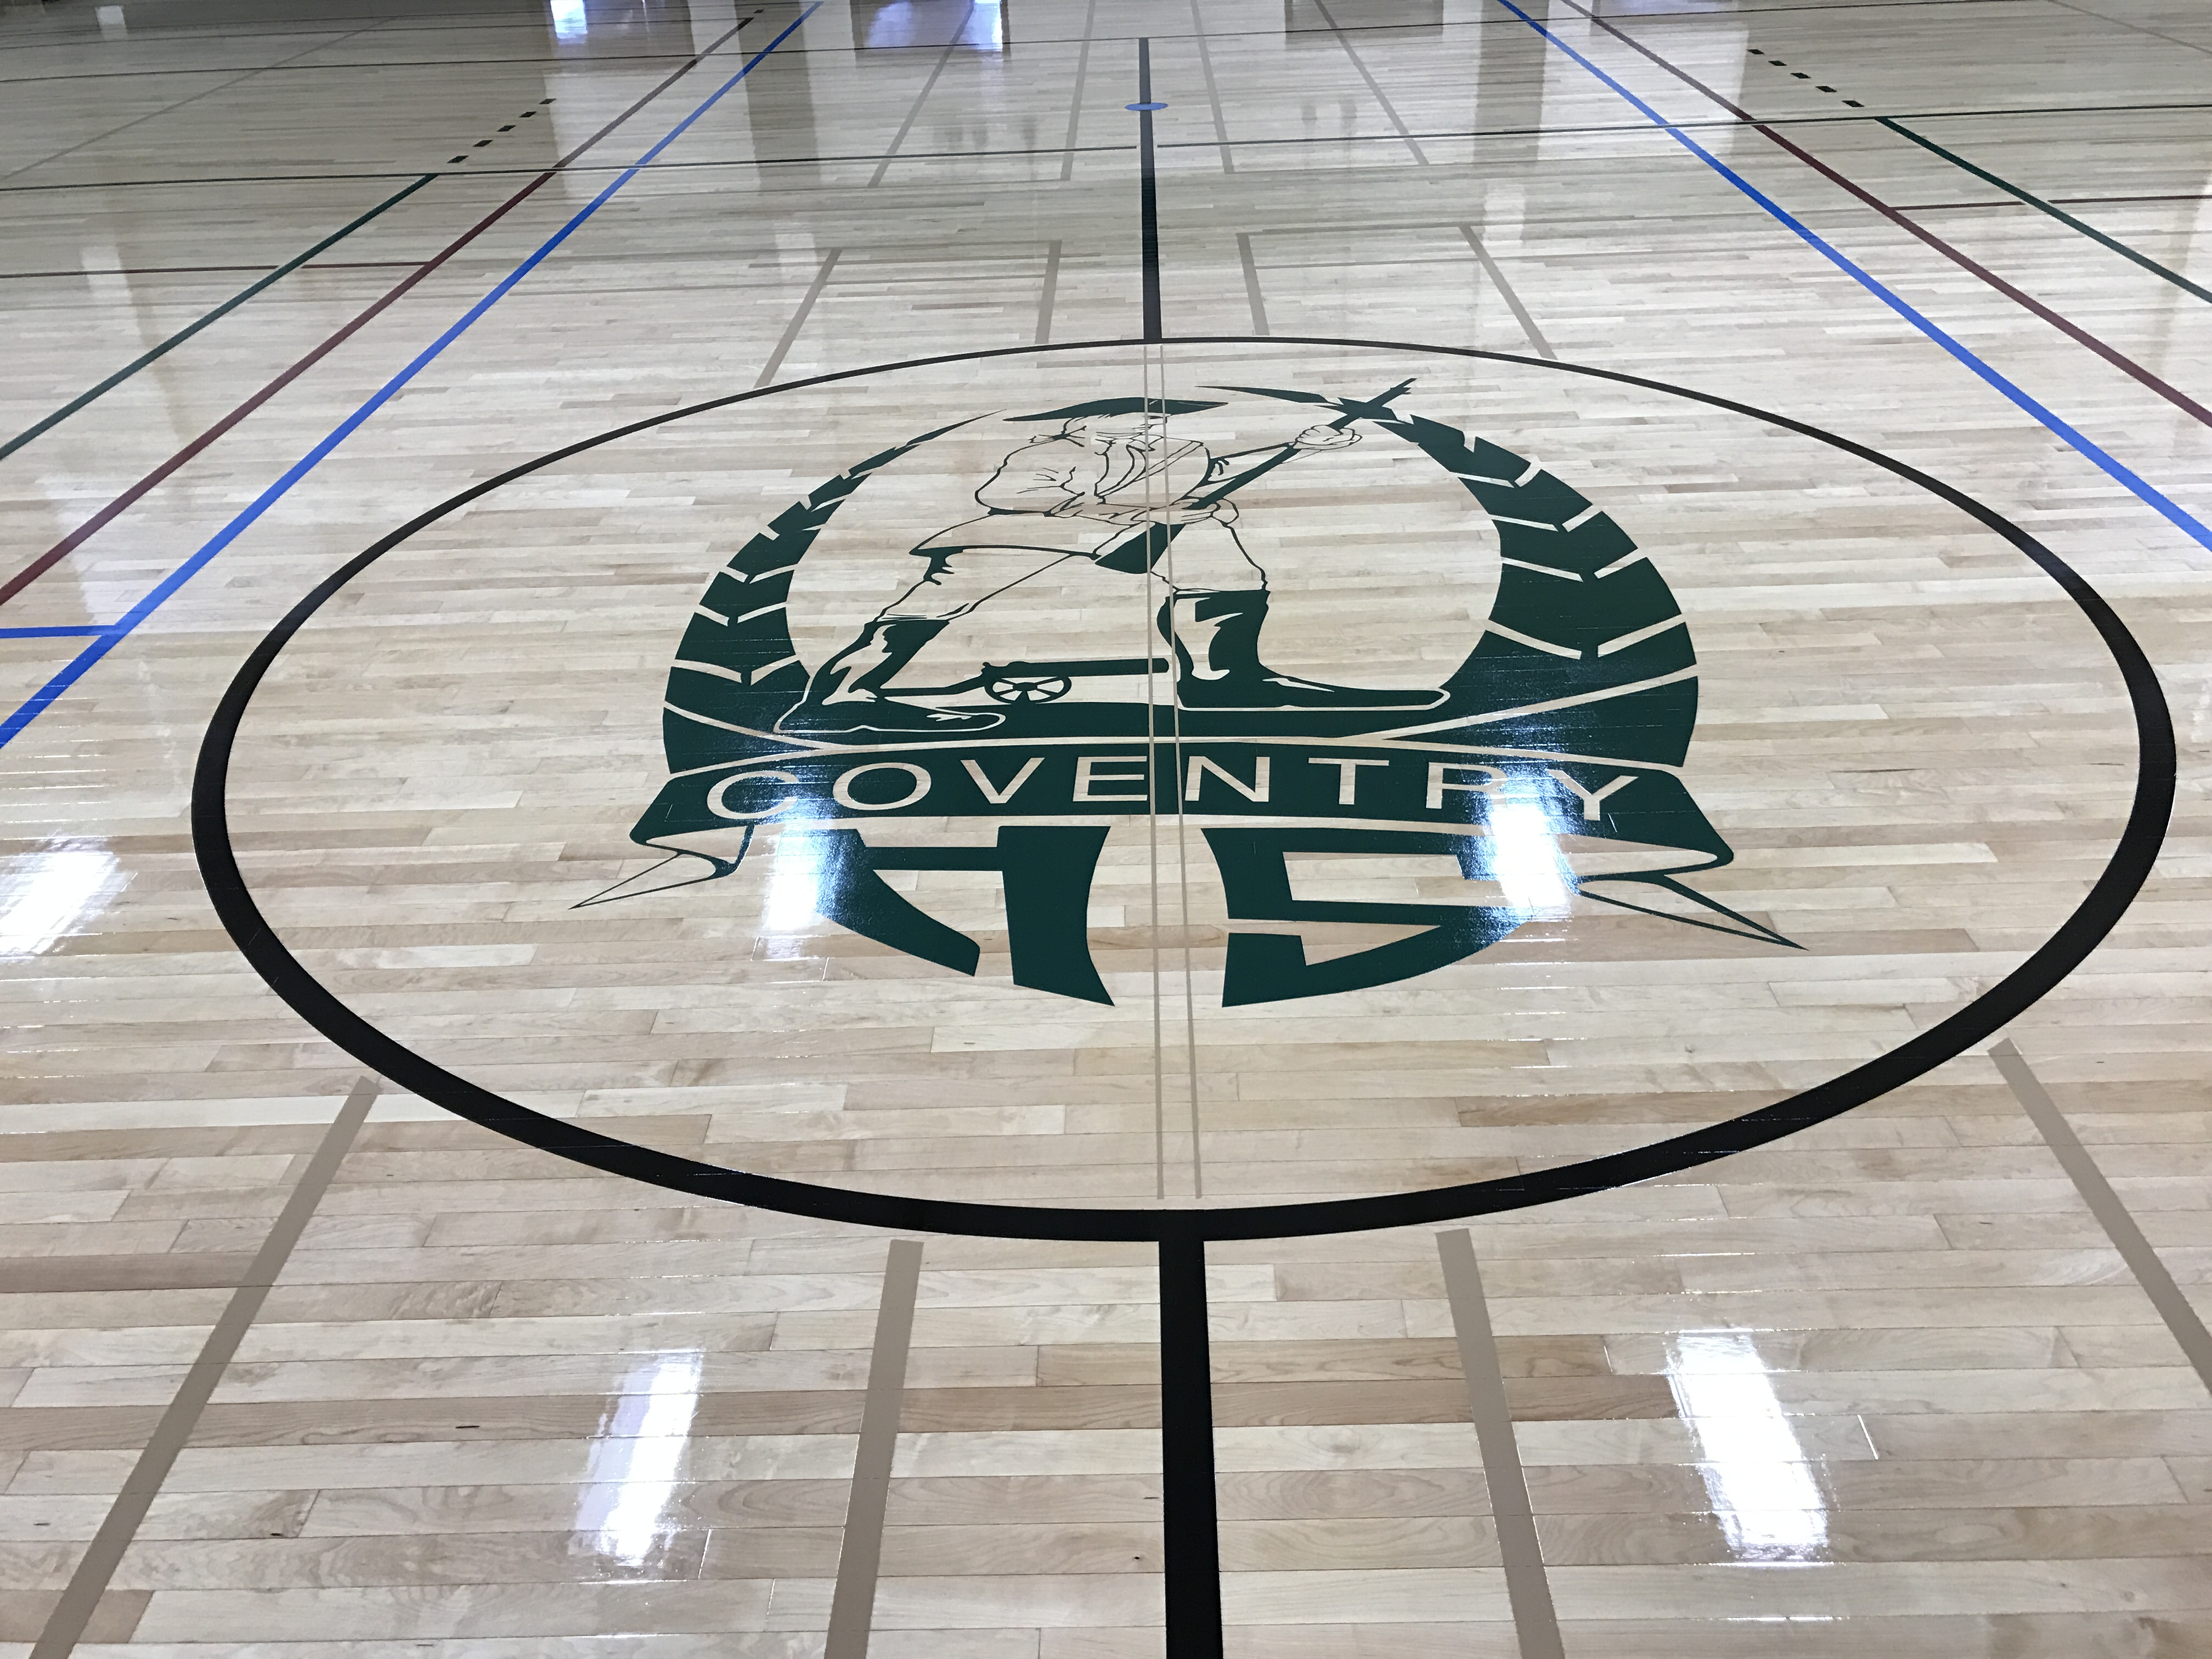 Logo - Patriot Outline - Coventry High School - Coventry CT.JPG